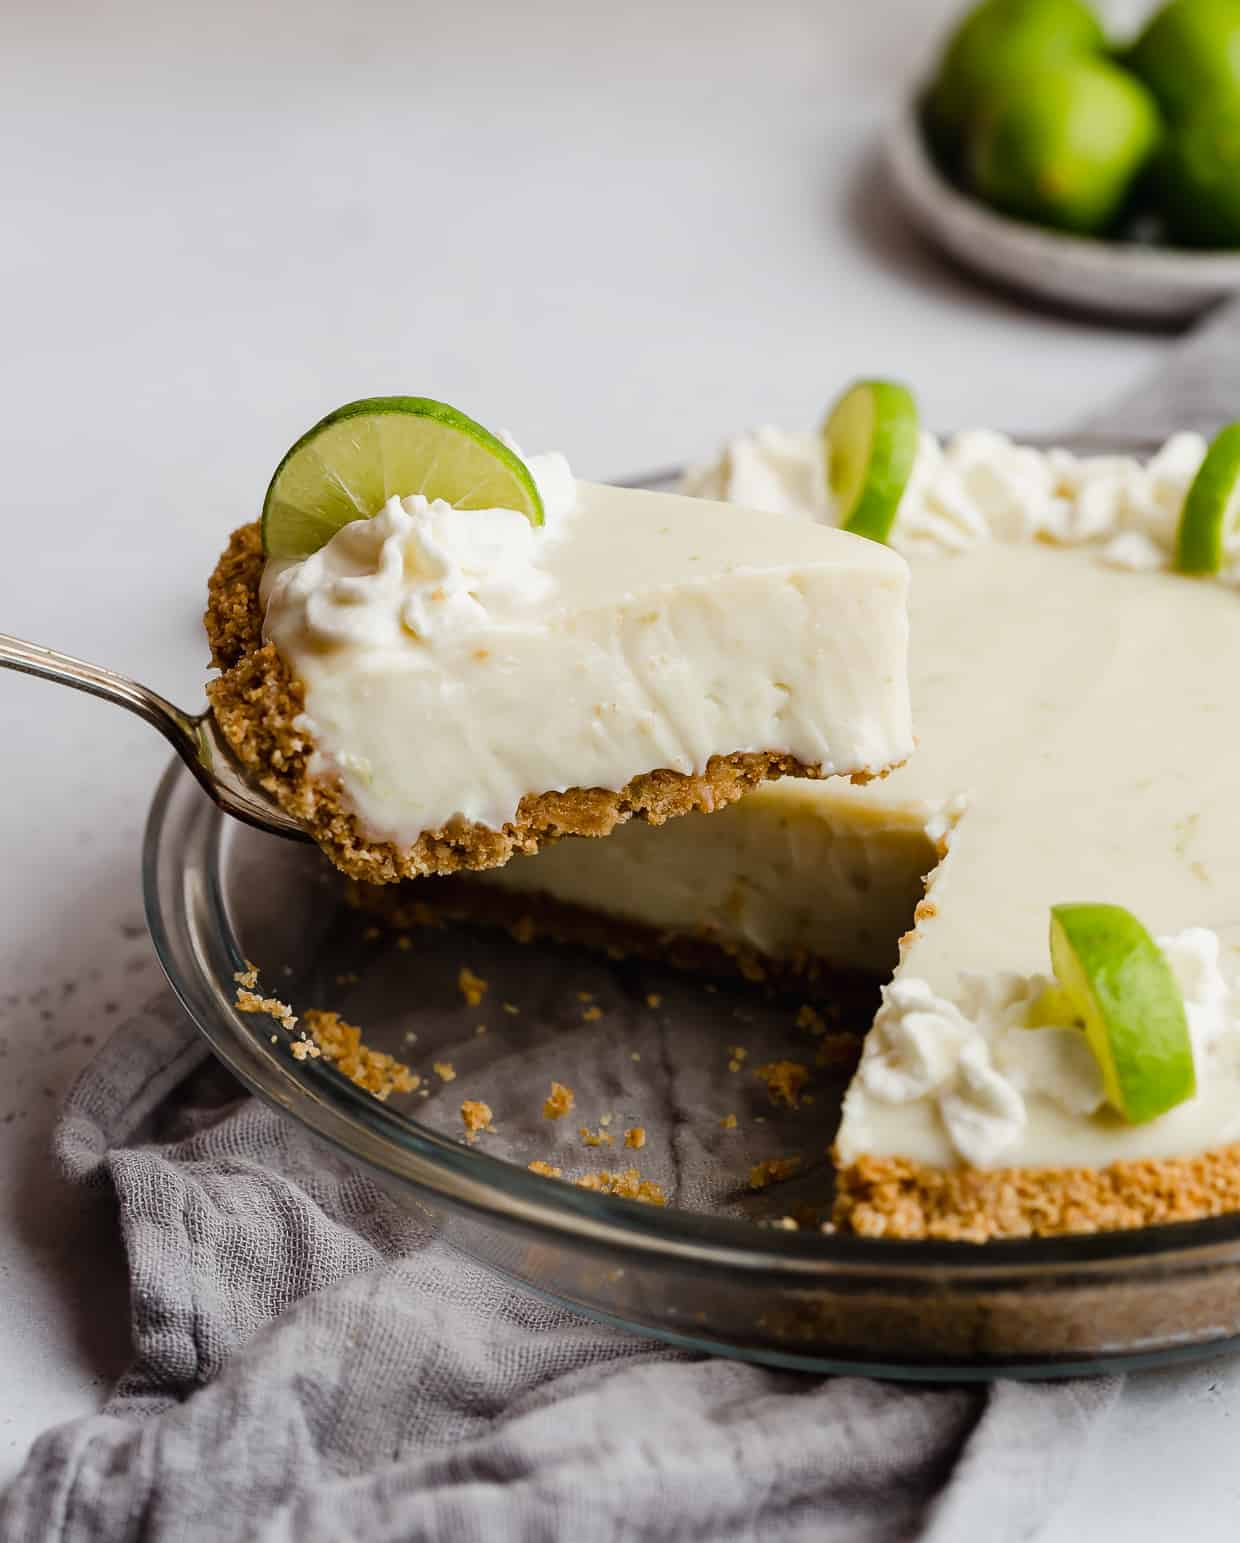 A metal spatula holding up a slice of key lime pie.